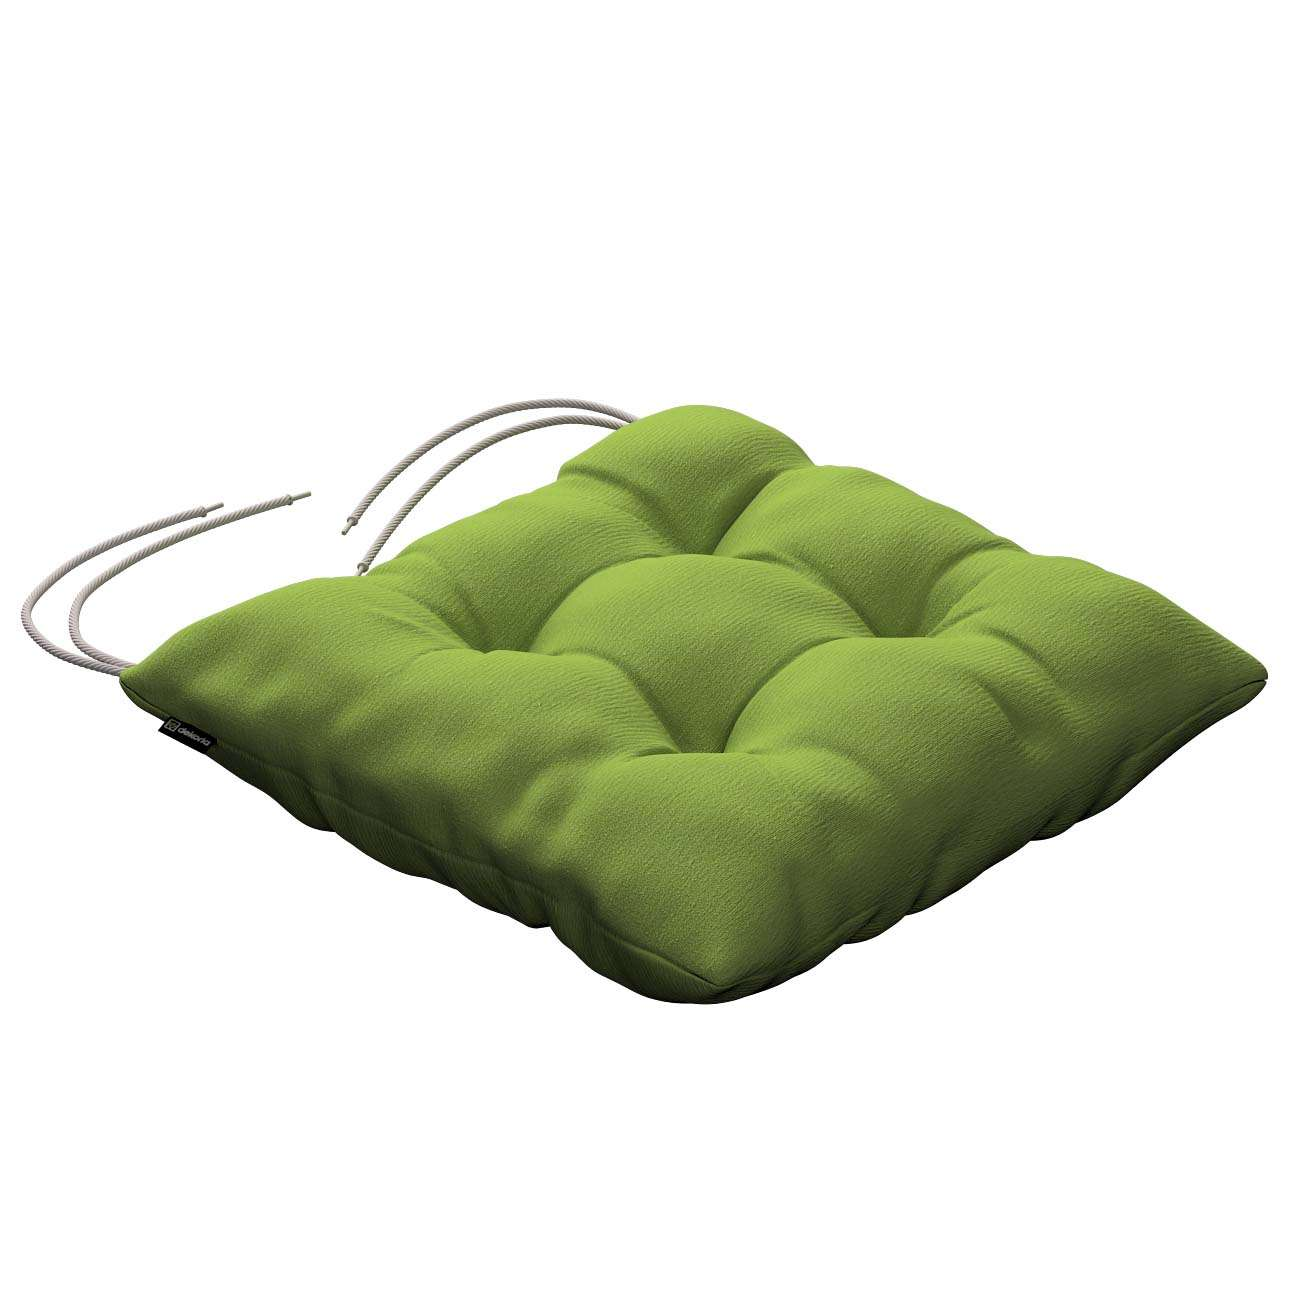 Jack seat pad with ties 40 × 40 × 8 cm (16 × 16 × 3 inch) in collection Quadro, fabric: 136-37